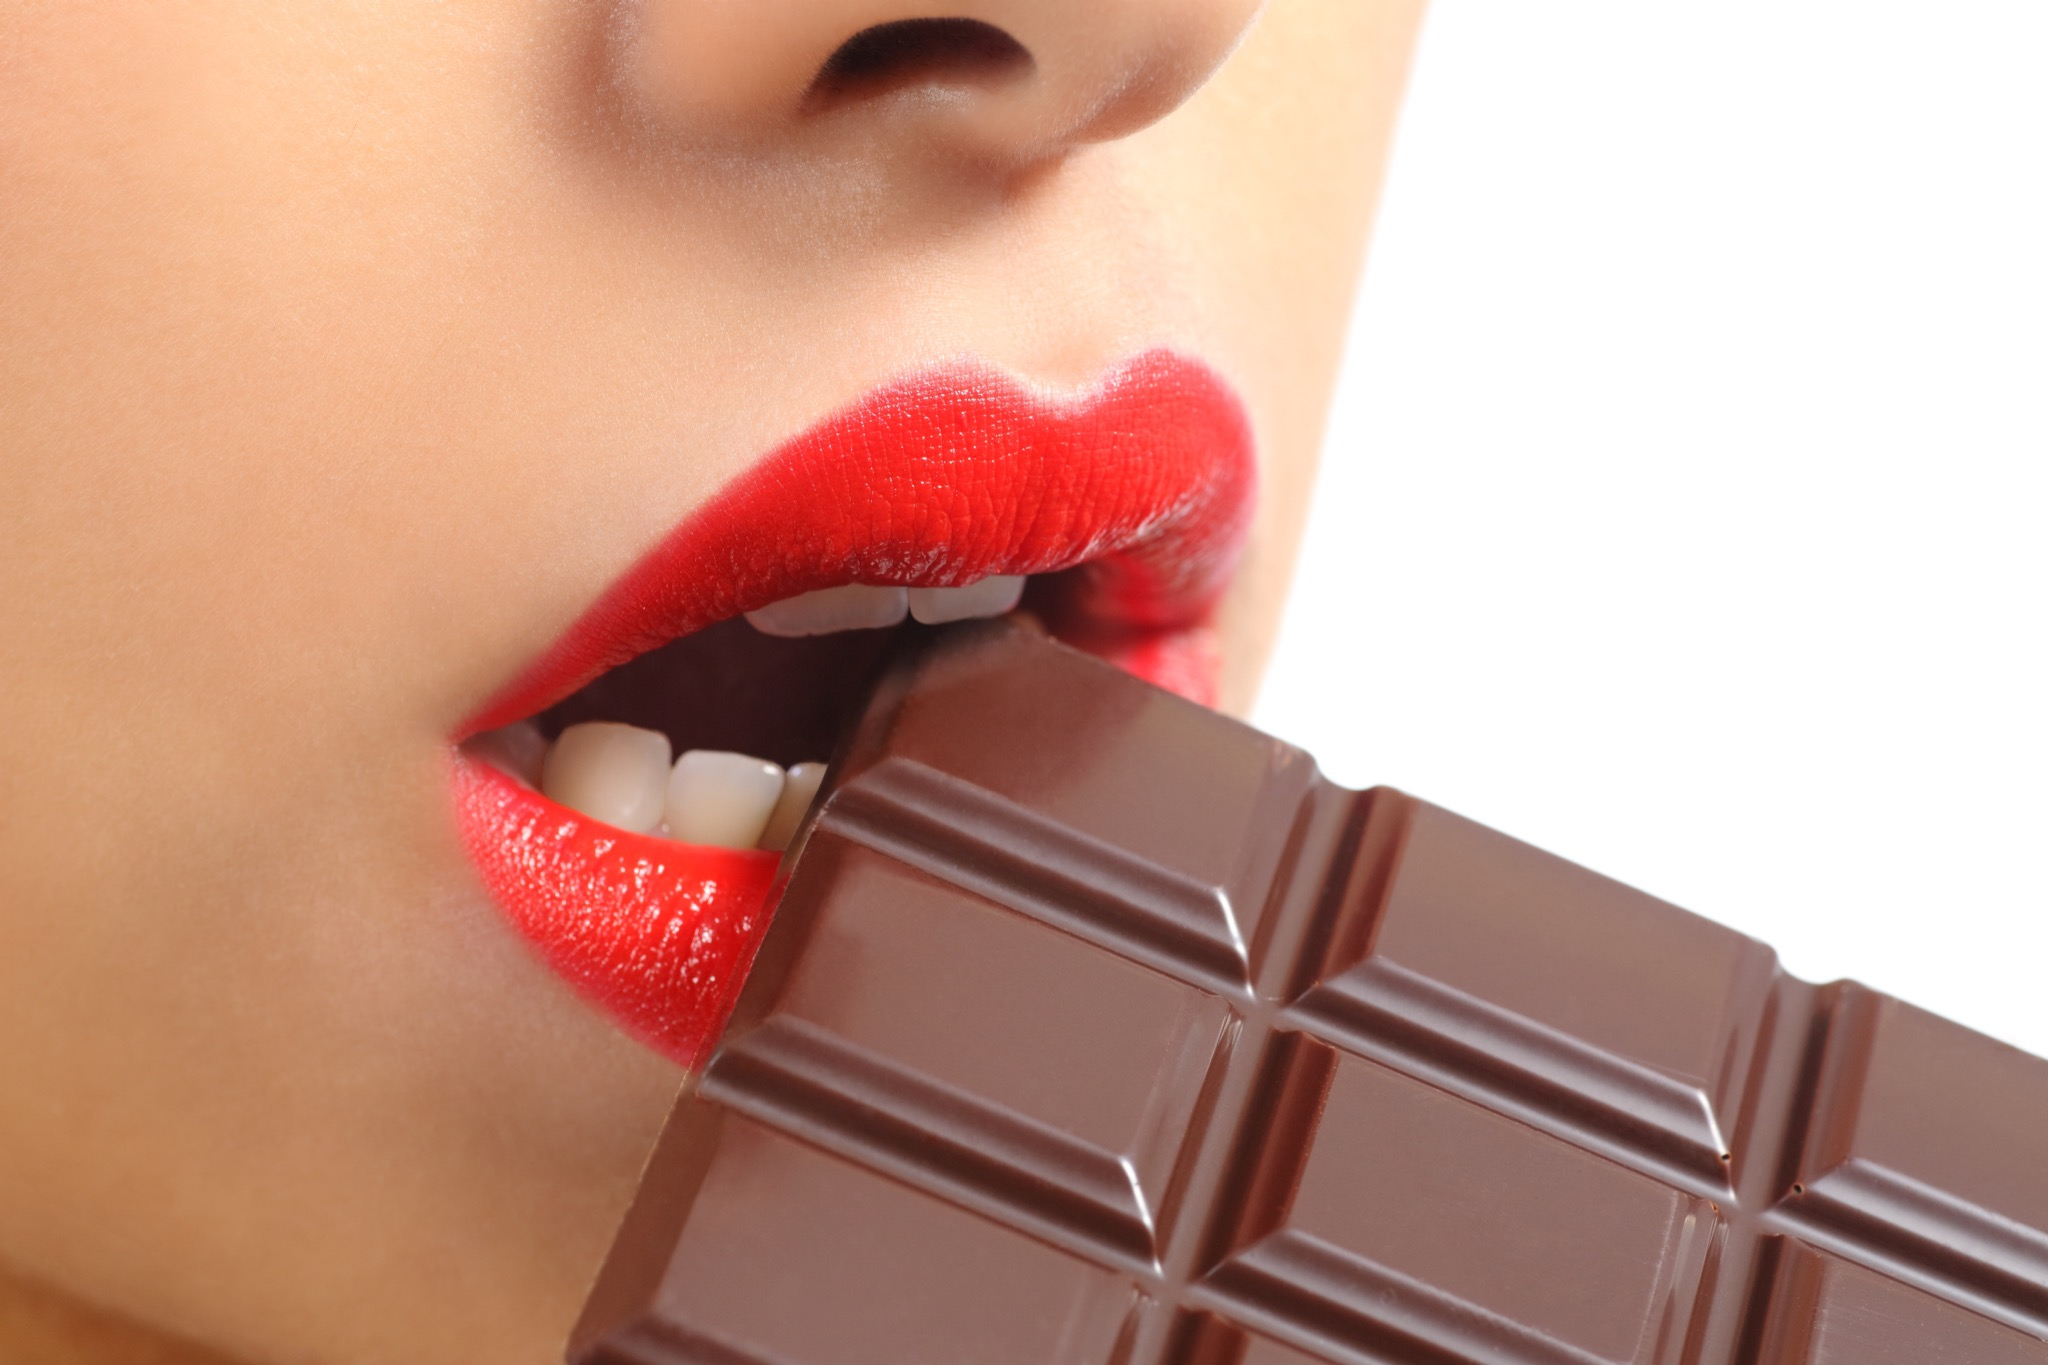 National Chocolate Day 2017 Memes: Best Jokes, Funny Photos & Images